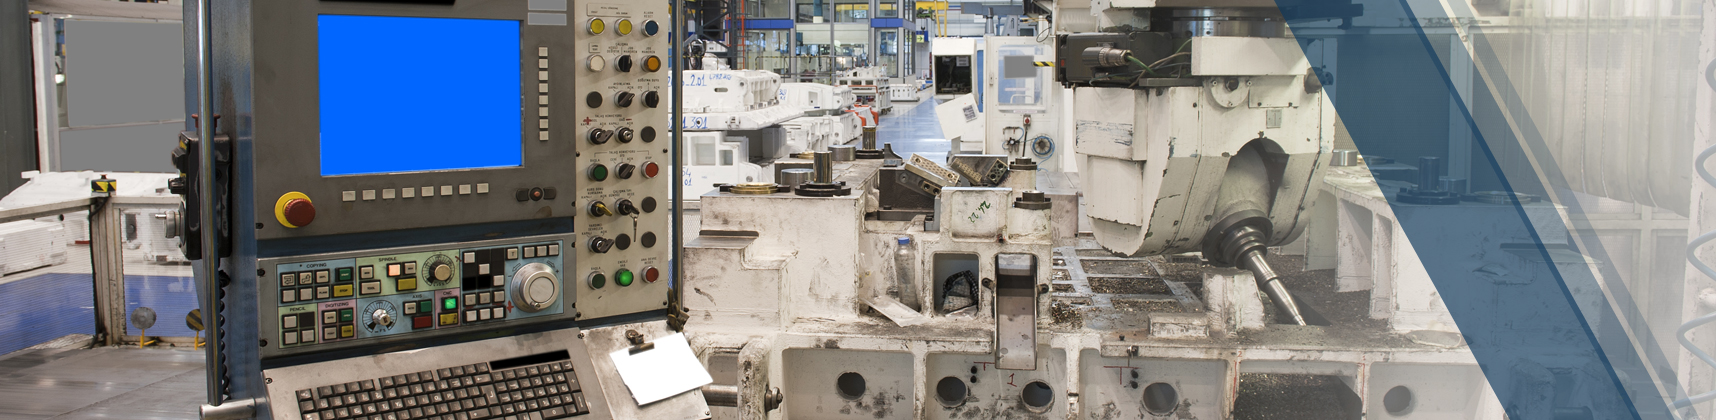 Obsolete controllers and components for plastic injection molding machines